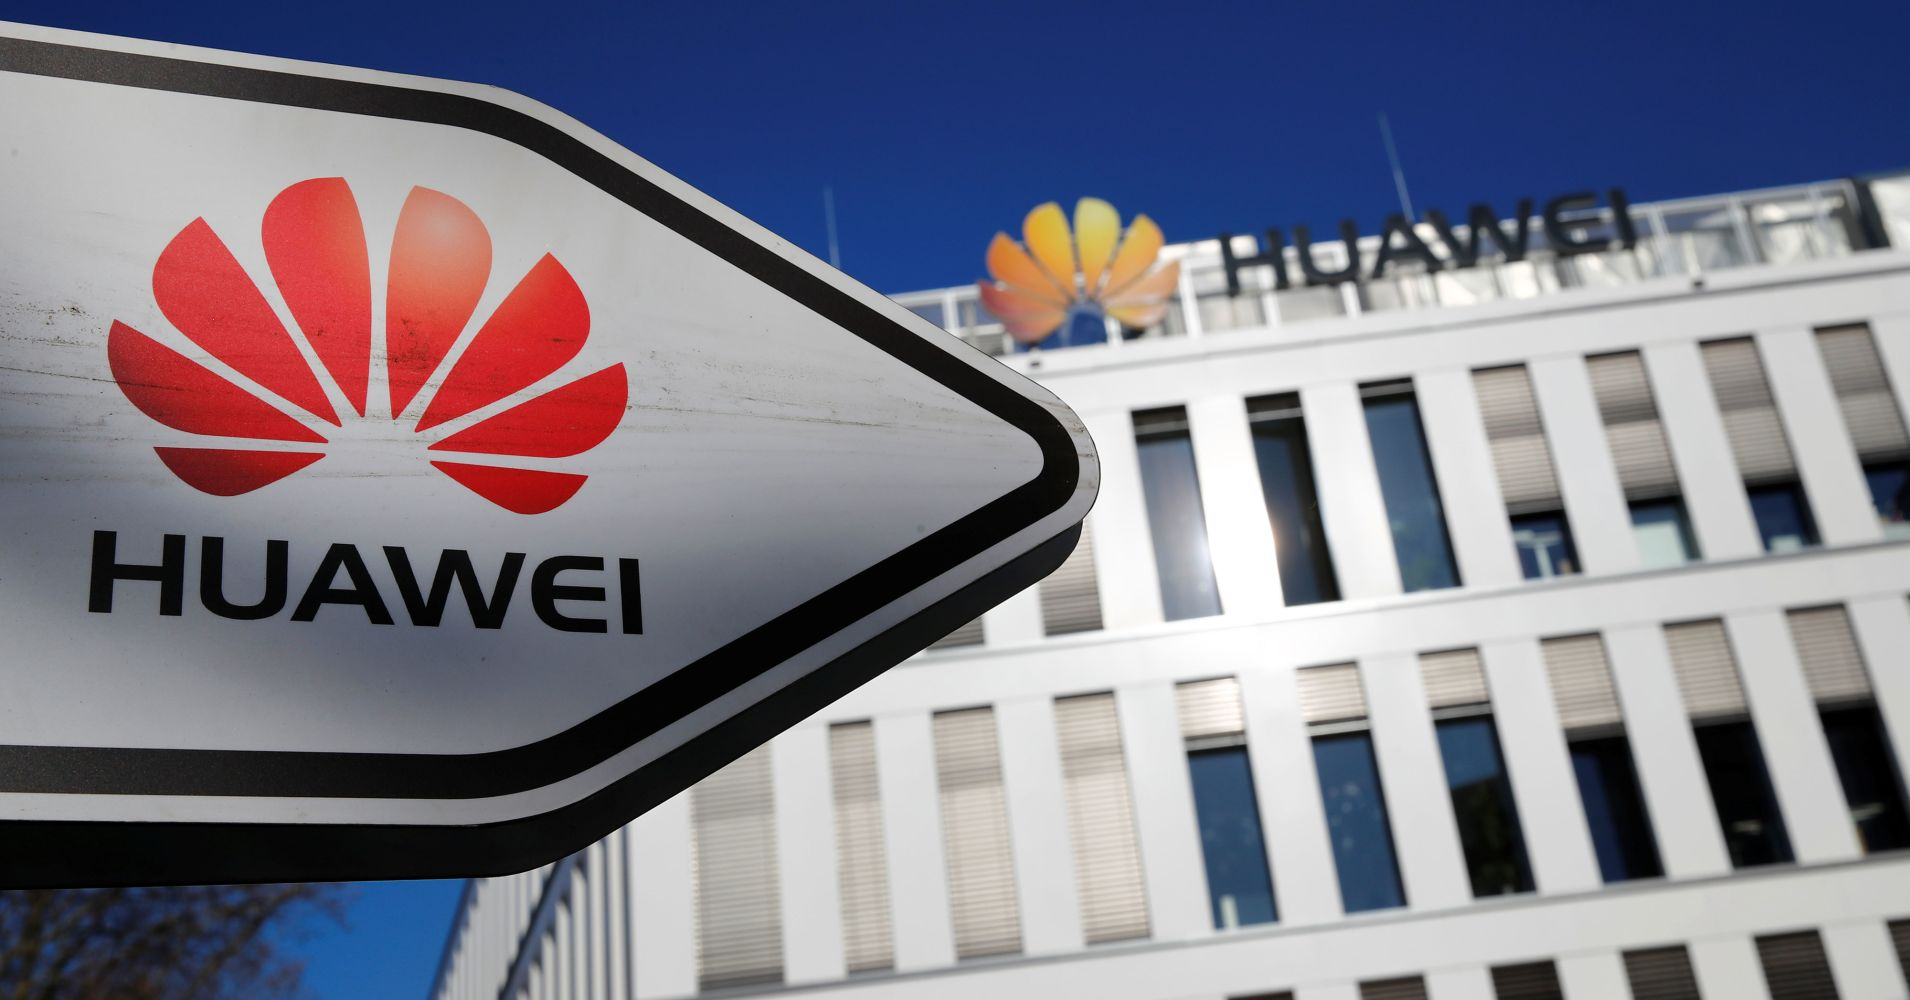 UK defense think tank warns that allowing Huawei into 5G network is 'irresponsible'